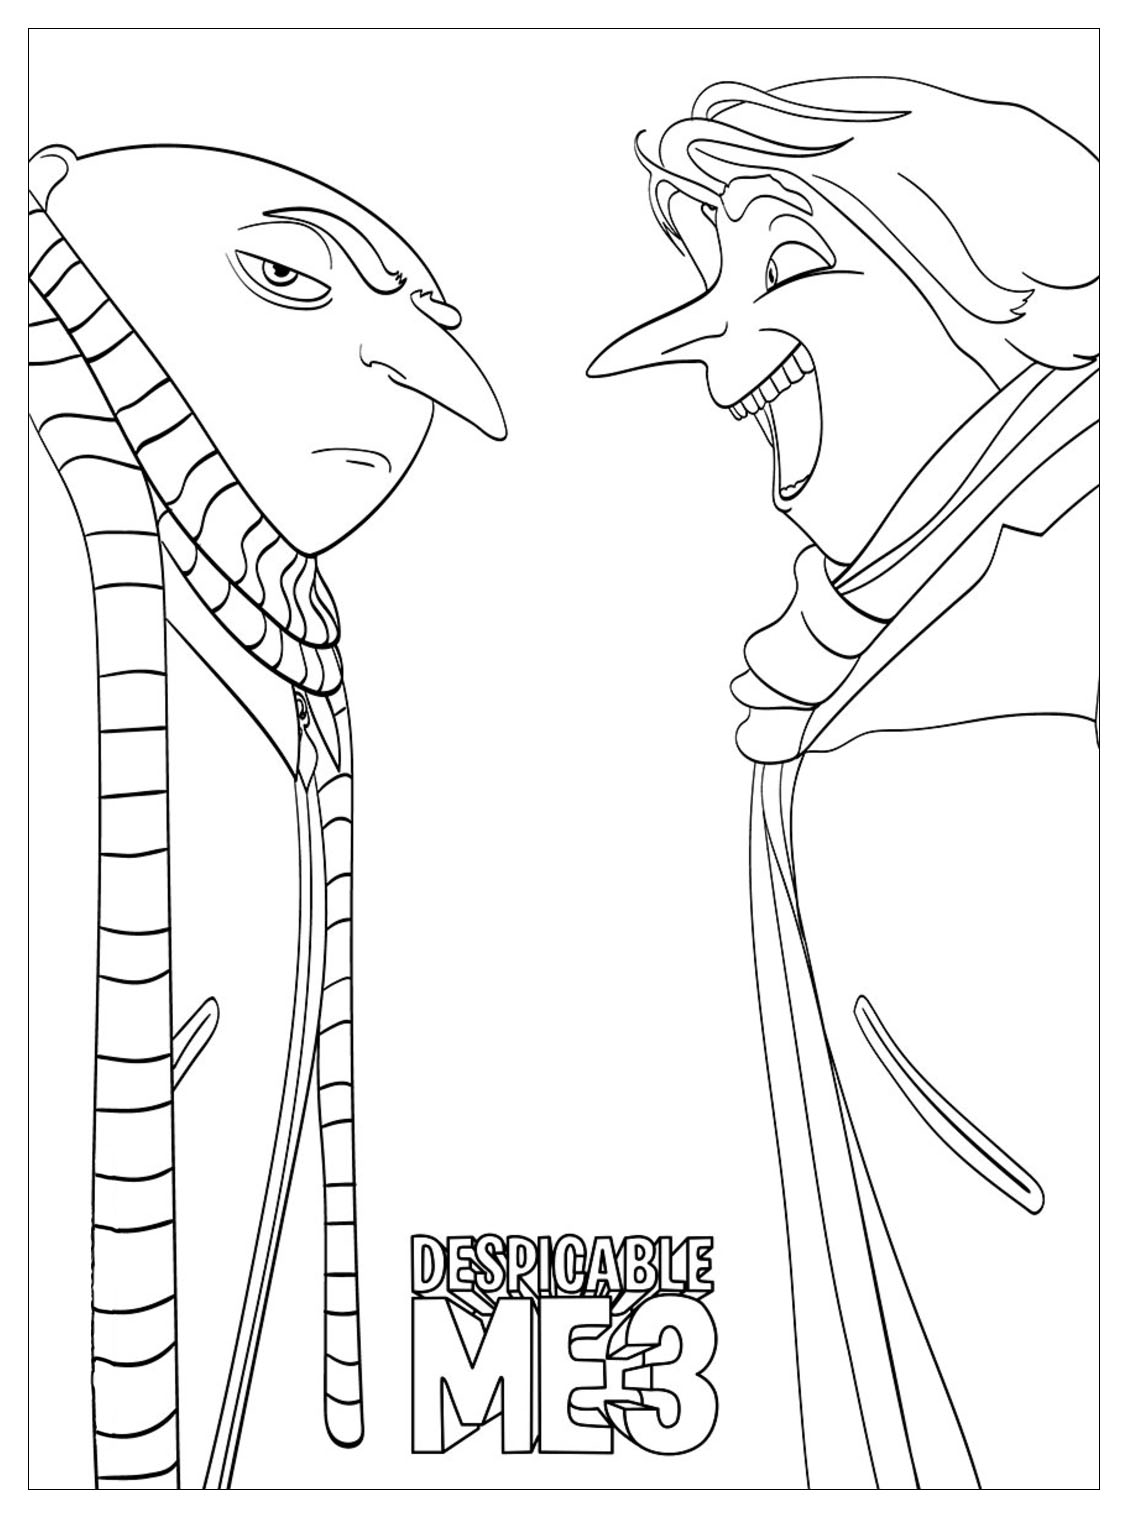 Free Printable Despicable Me Coloring Pages Online | 1519x1129